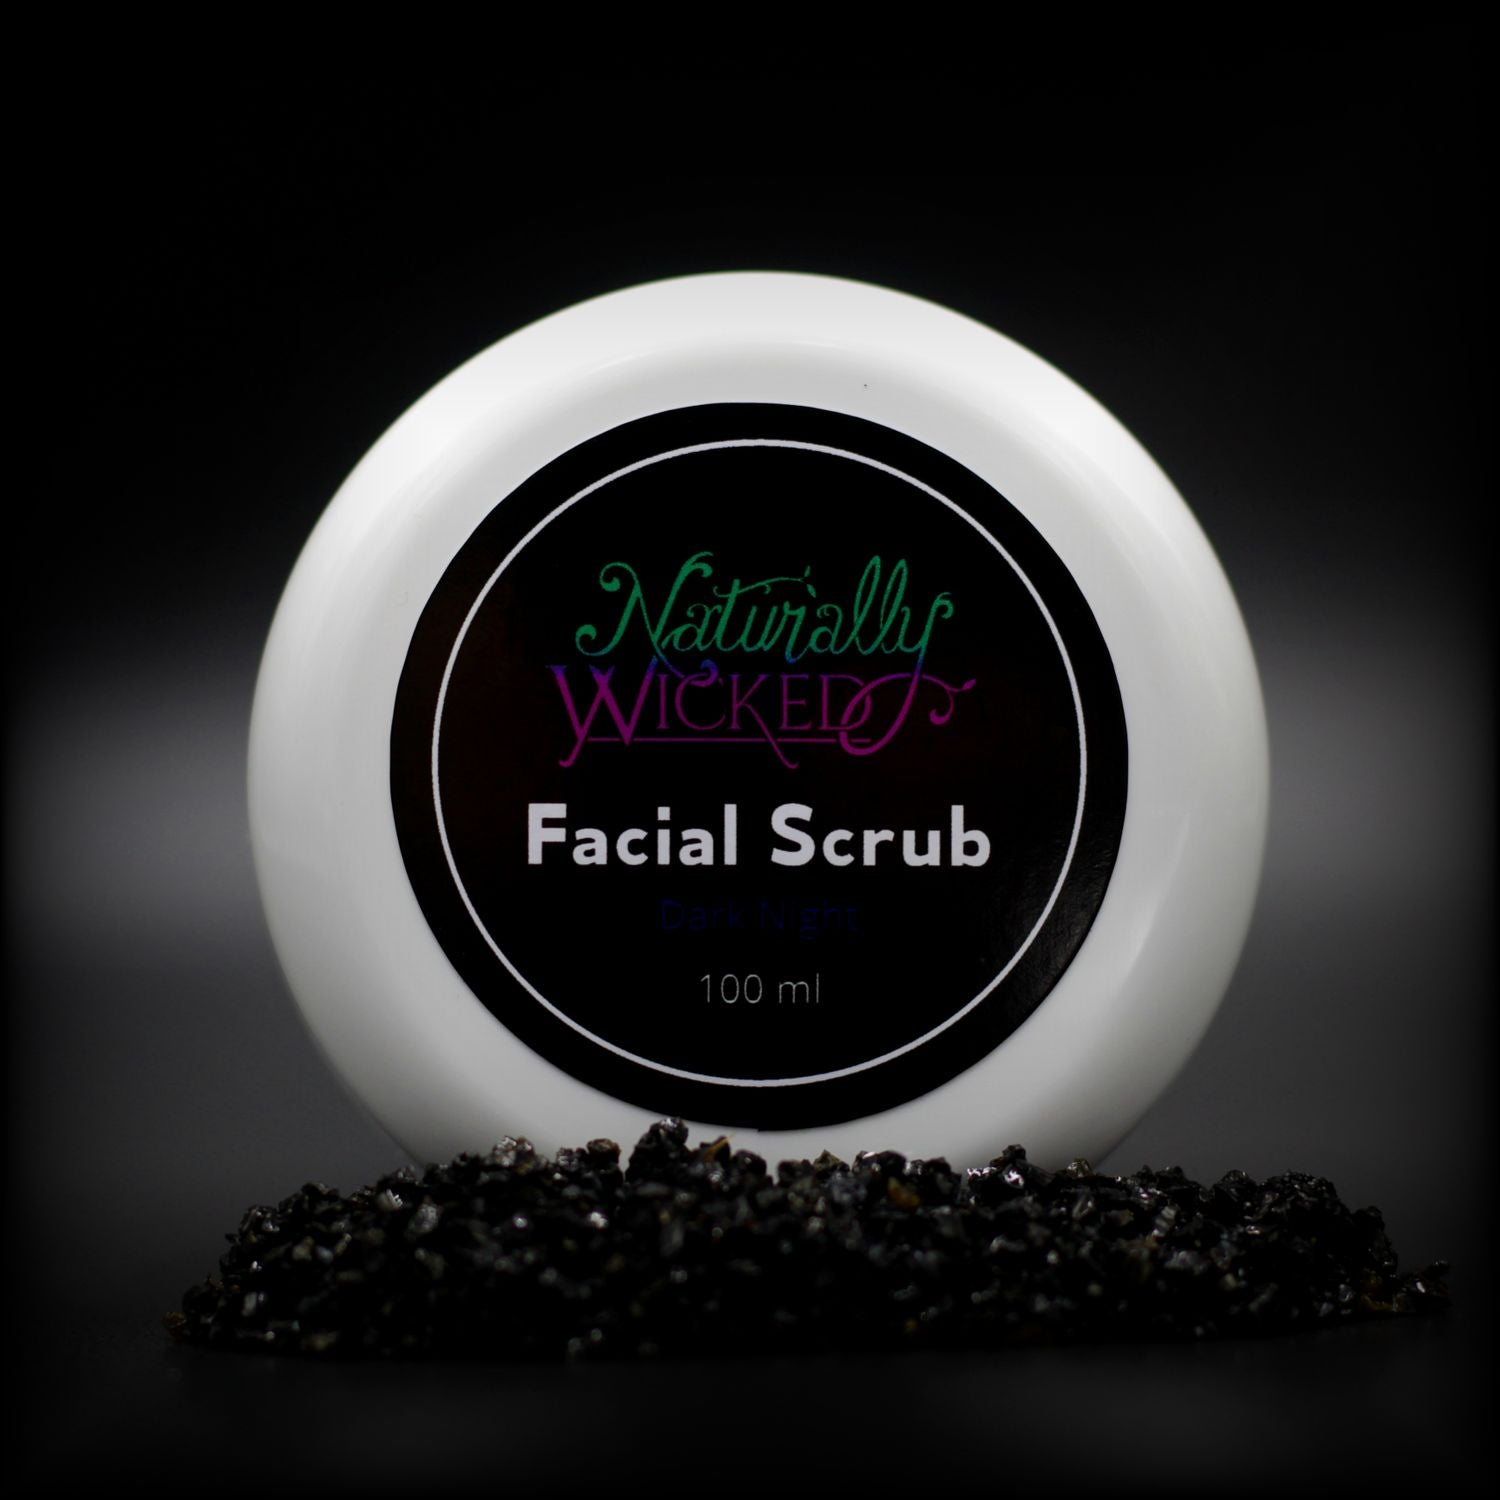 Naturally Wicked Dark Night Facial Scrub Lid Surrounded By Exfoliating Activated Charcoal